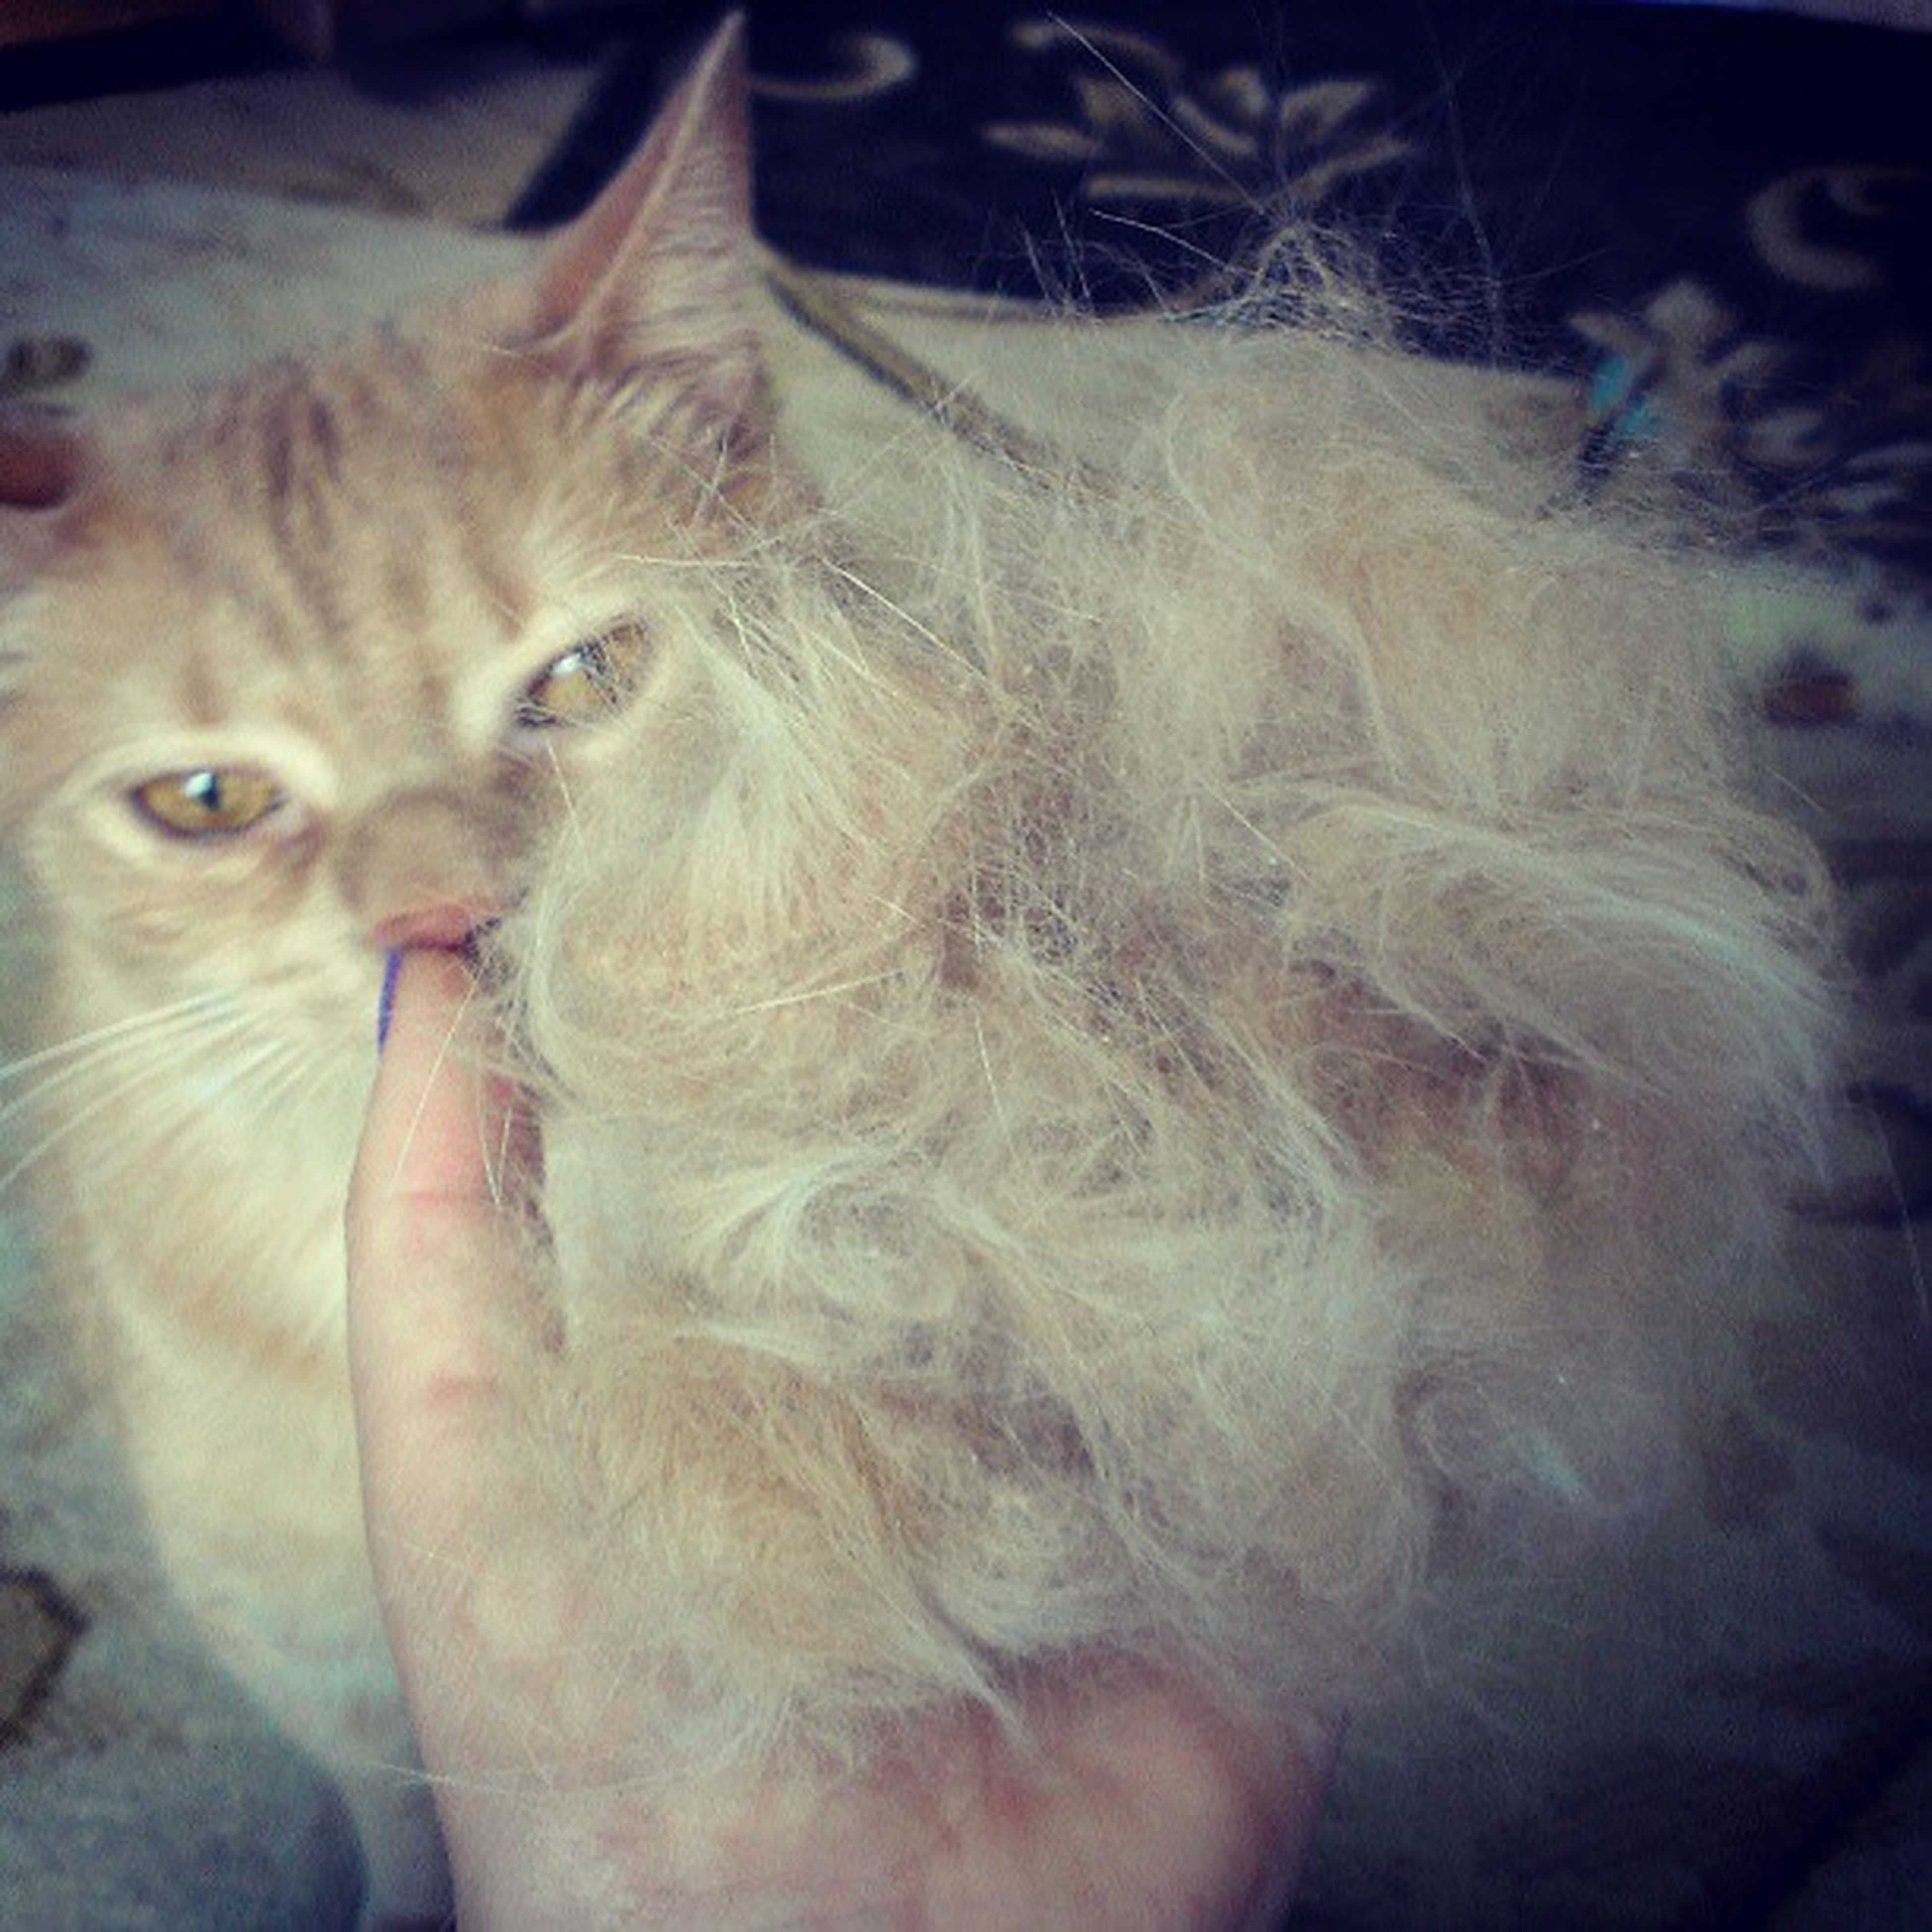 I JUST BRUSHED THIS CAT. Like three days ago! How is this even possible??? Mycathasfurbabies